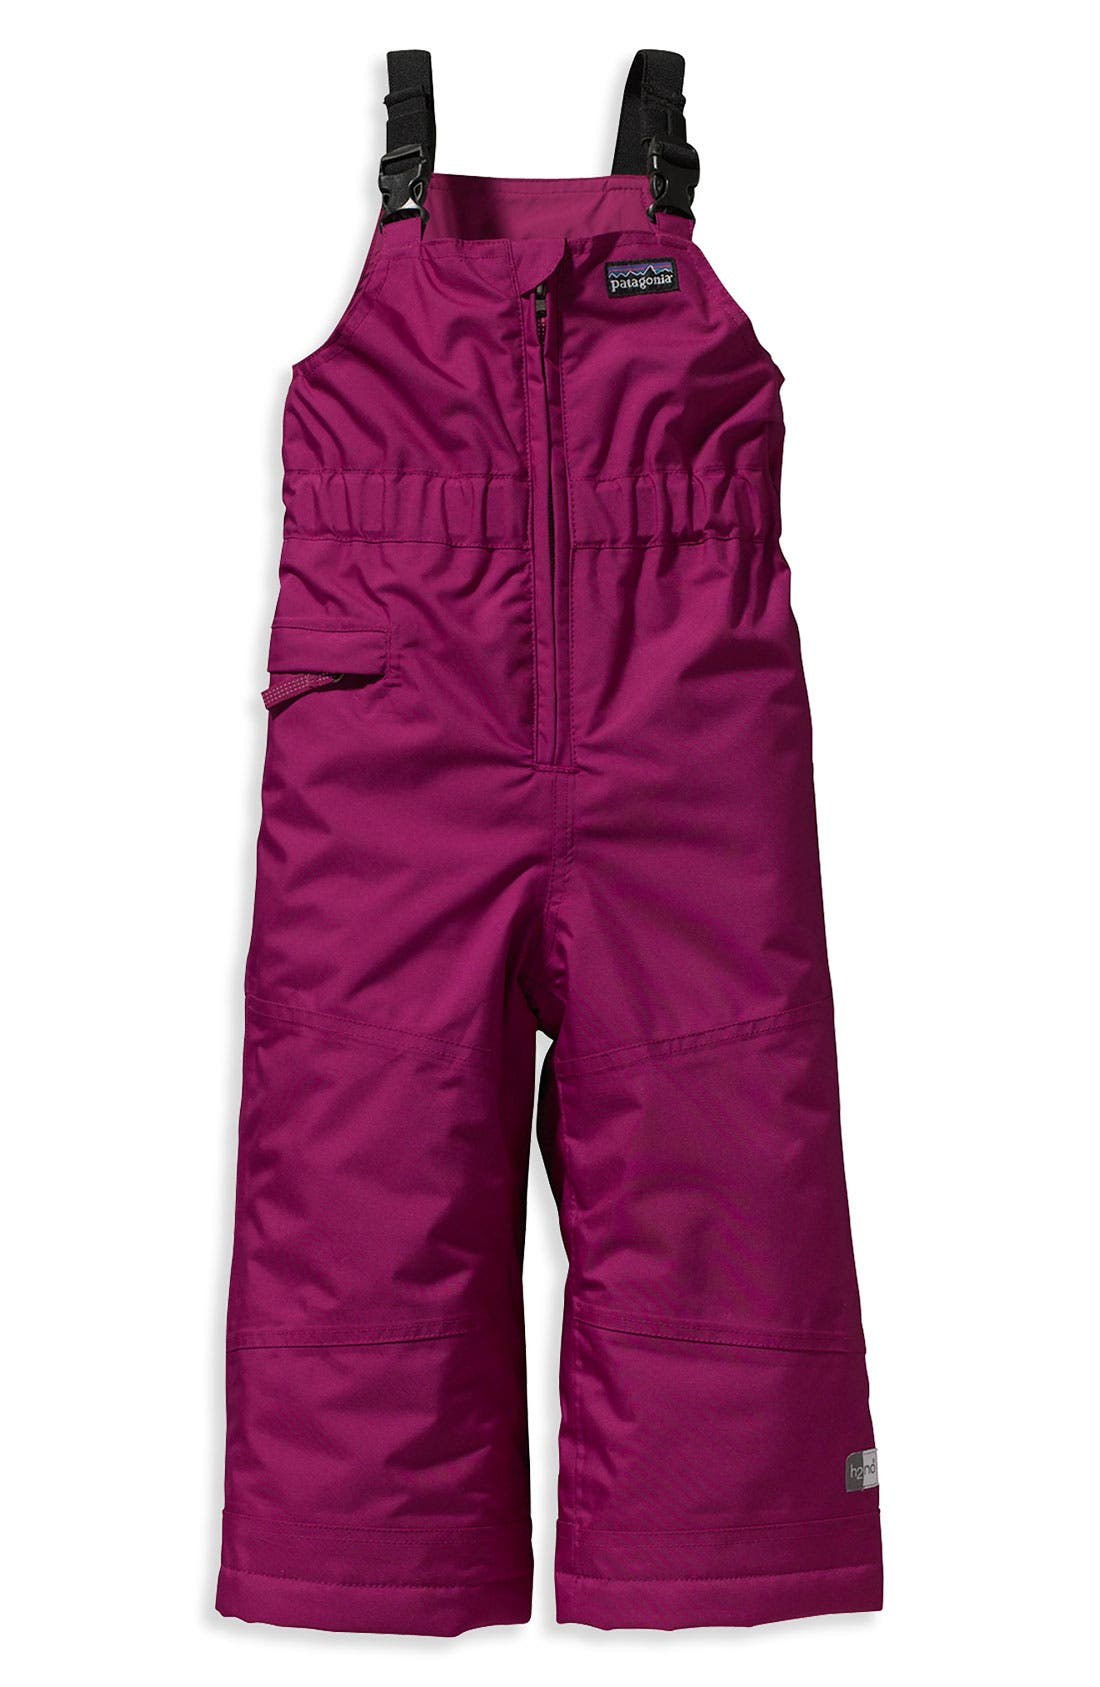 PATAGONIA,                             'Snow-Daze' Bib,                             Main thumbnail 1, color,                             650